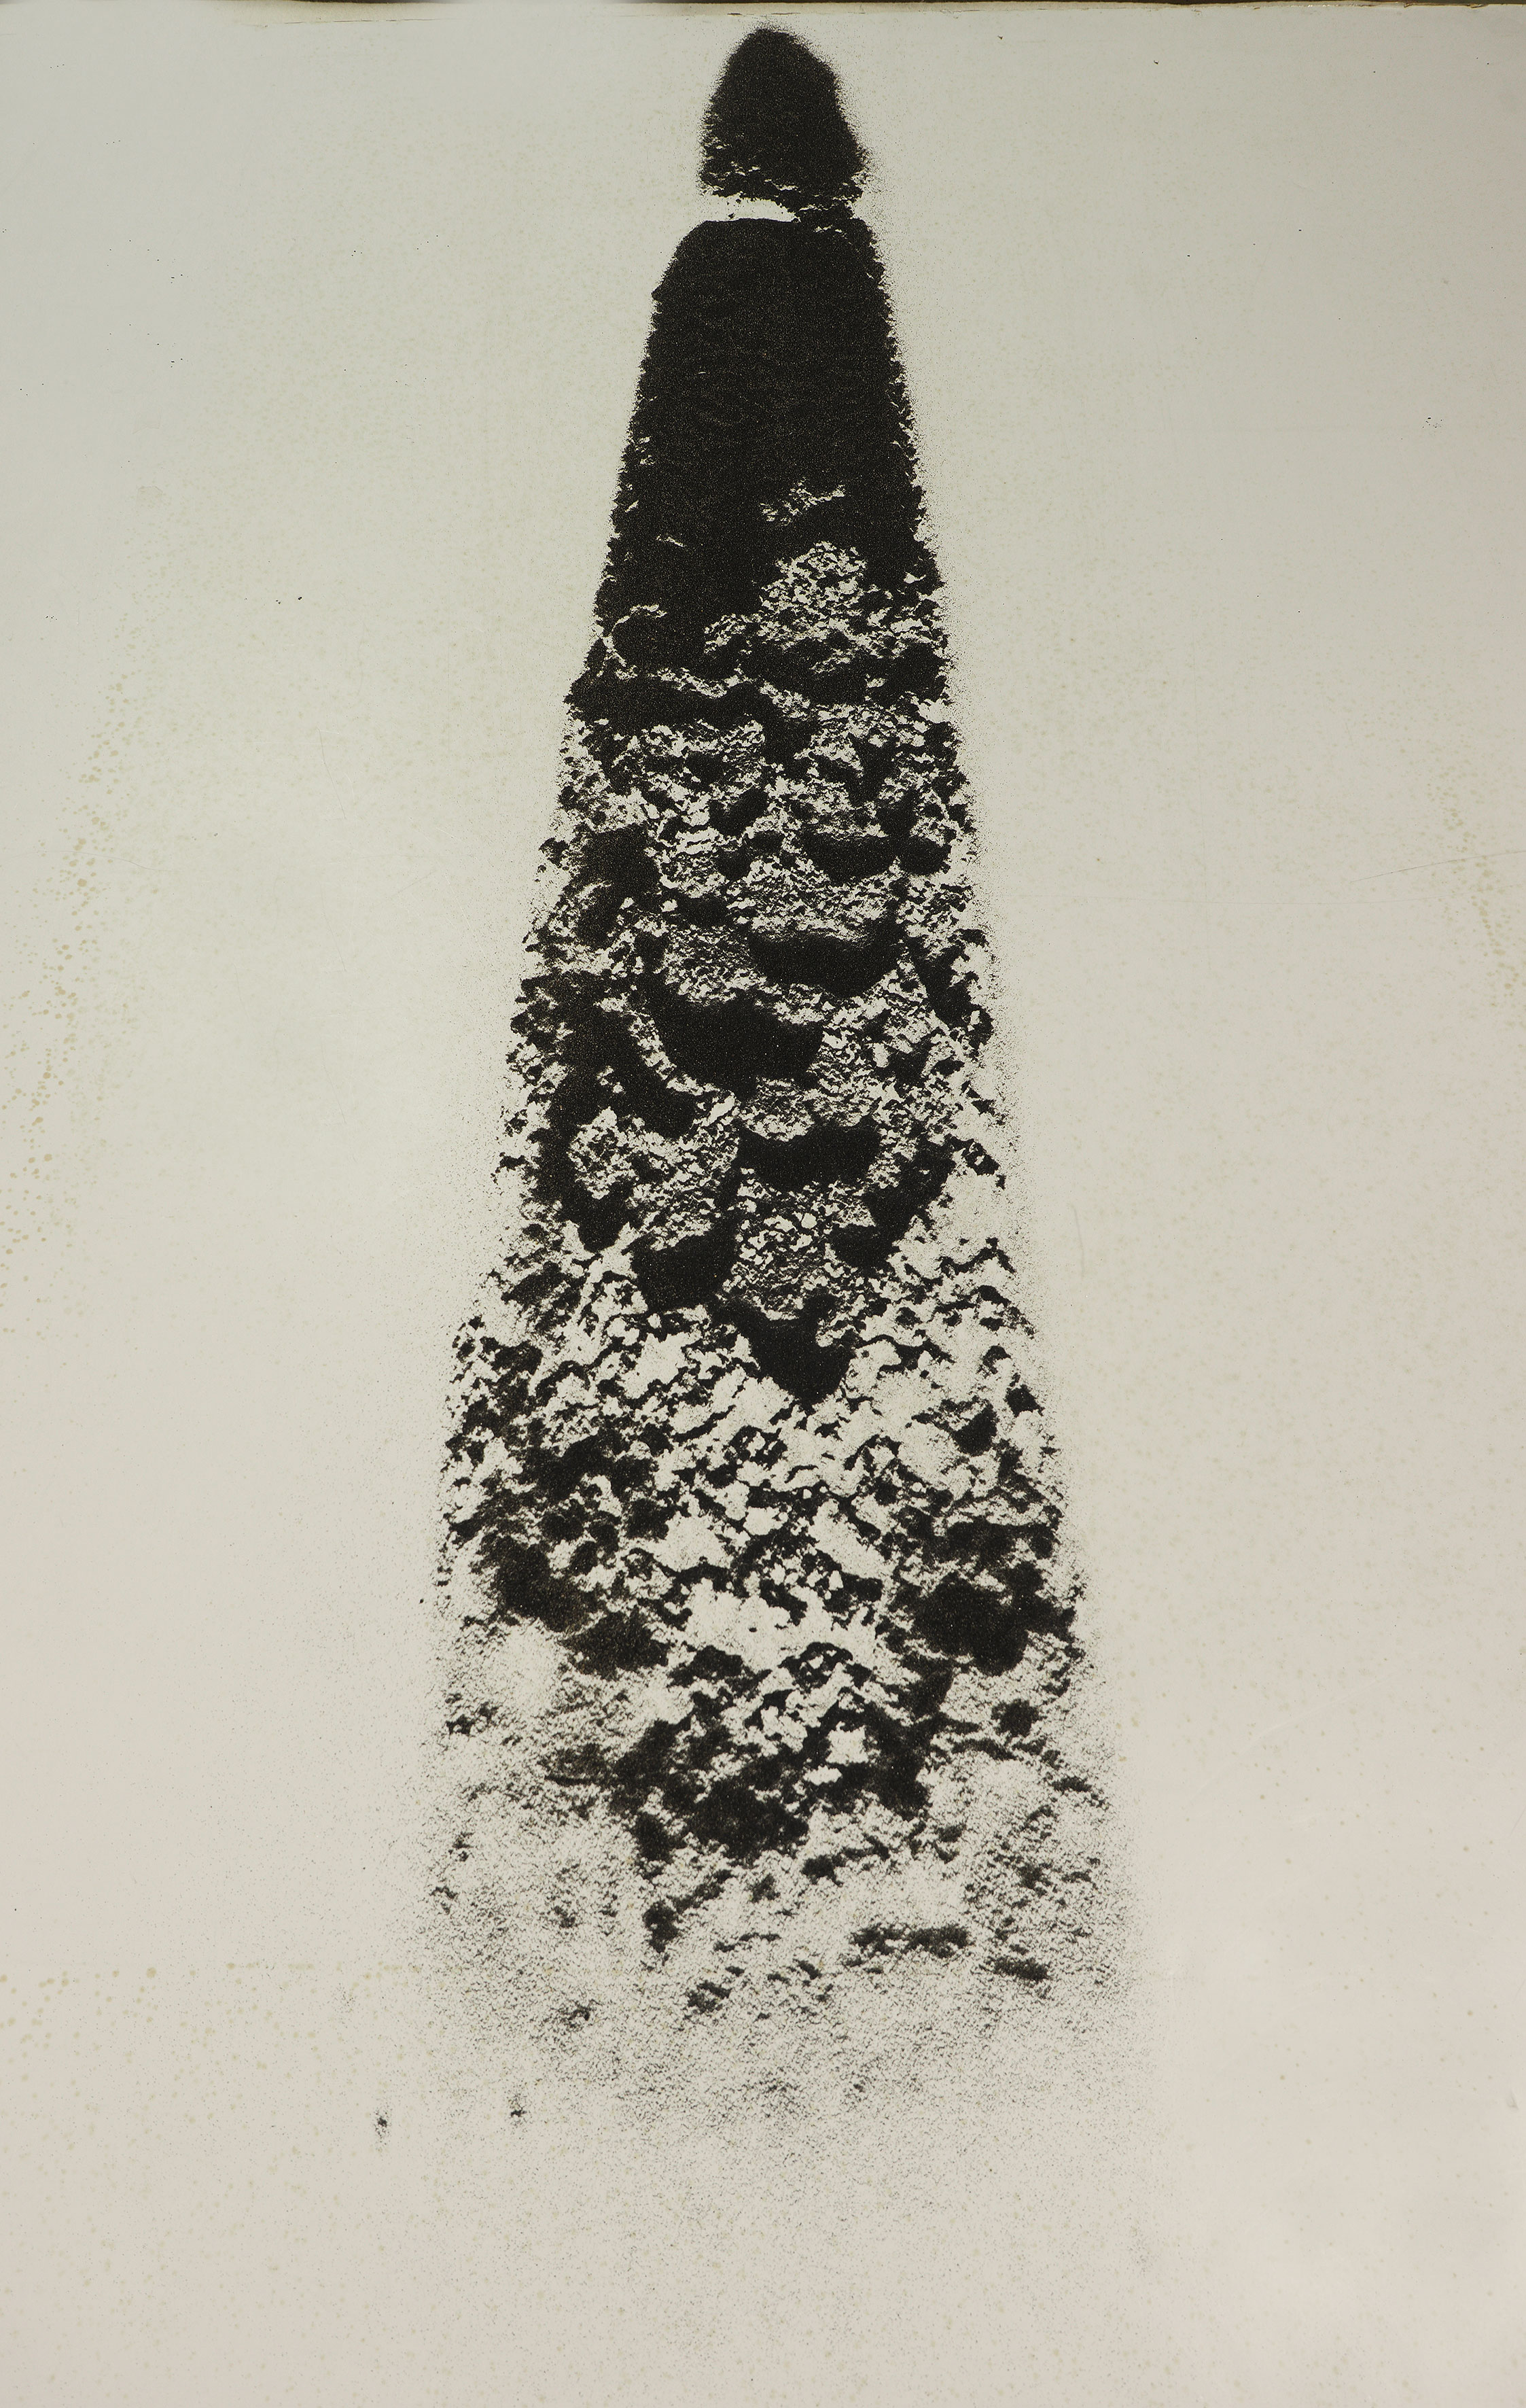 Untitled, 2017. Black volcanic sand drawing.